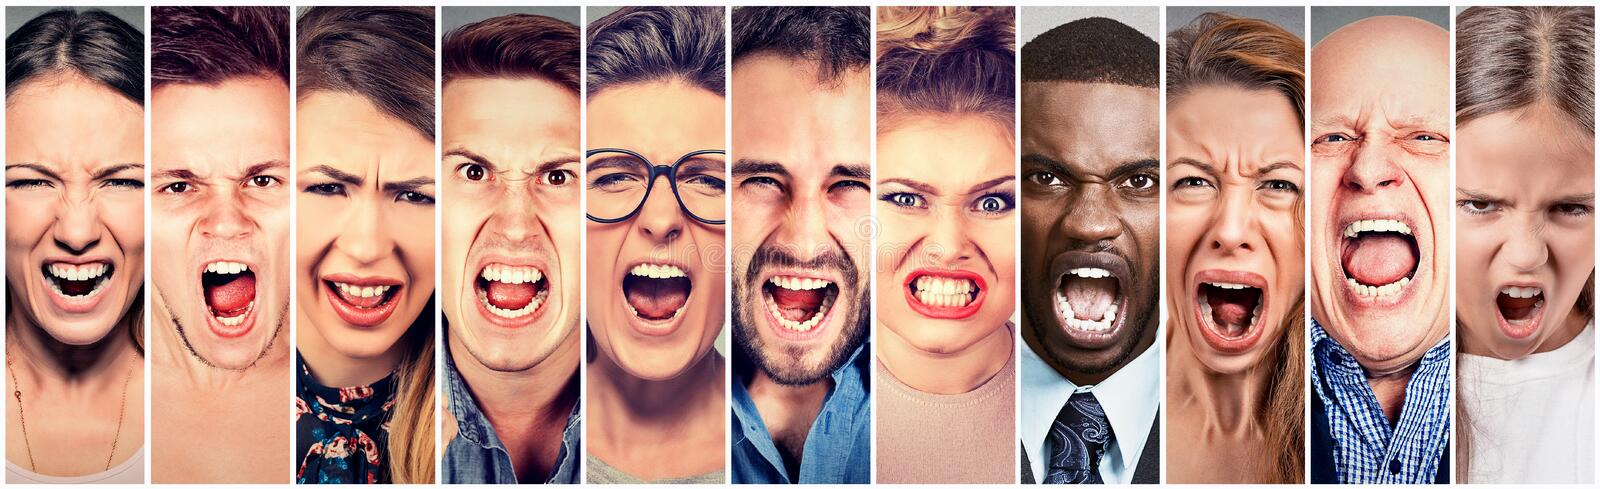 Angry people screaming. Group of men women frustrated shouting royalty free stock images